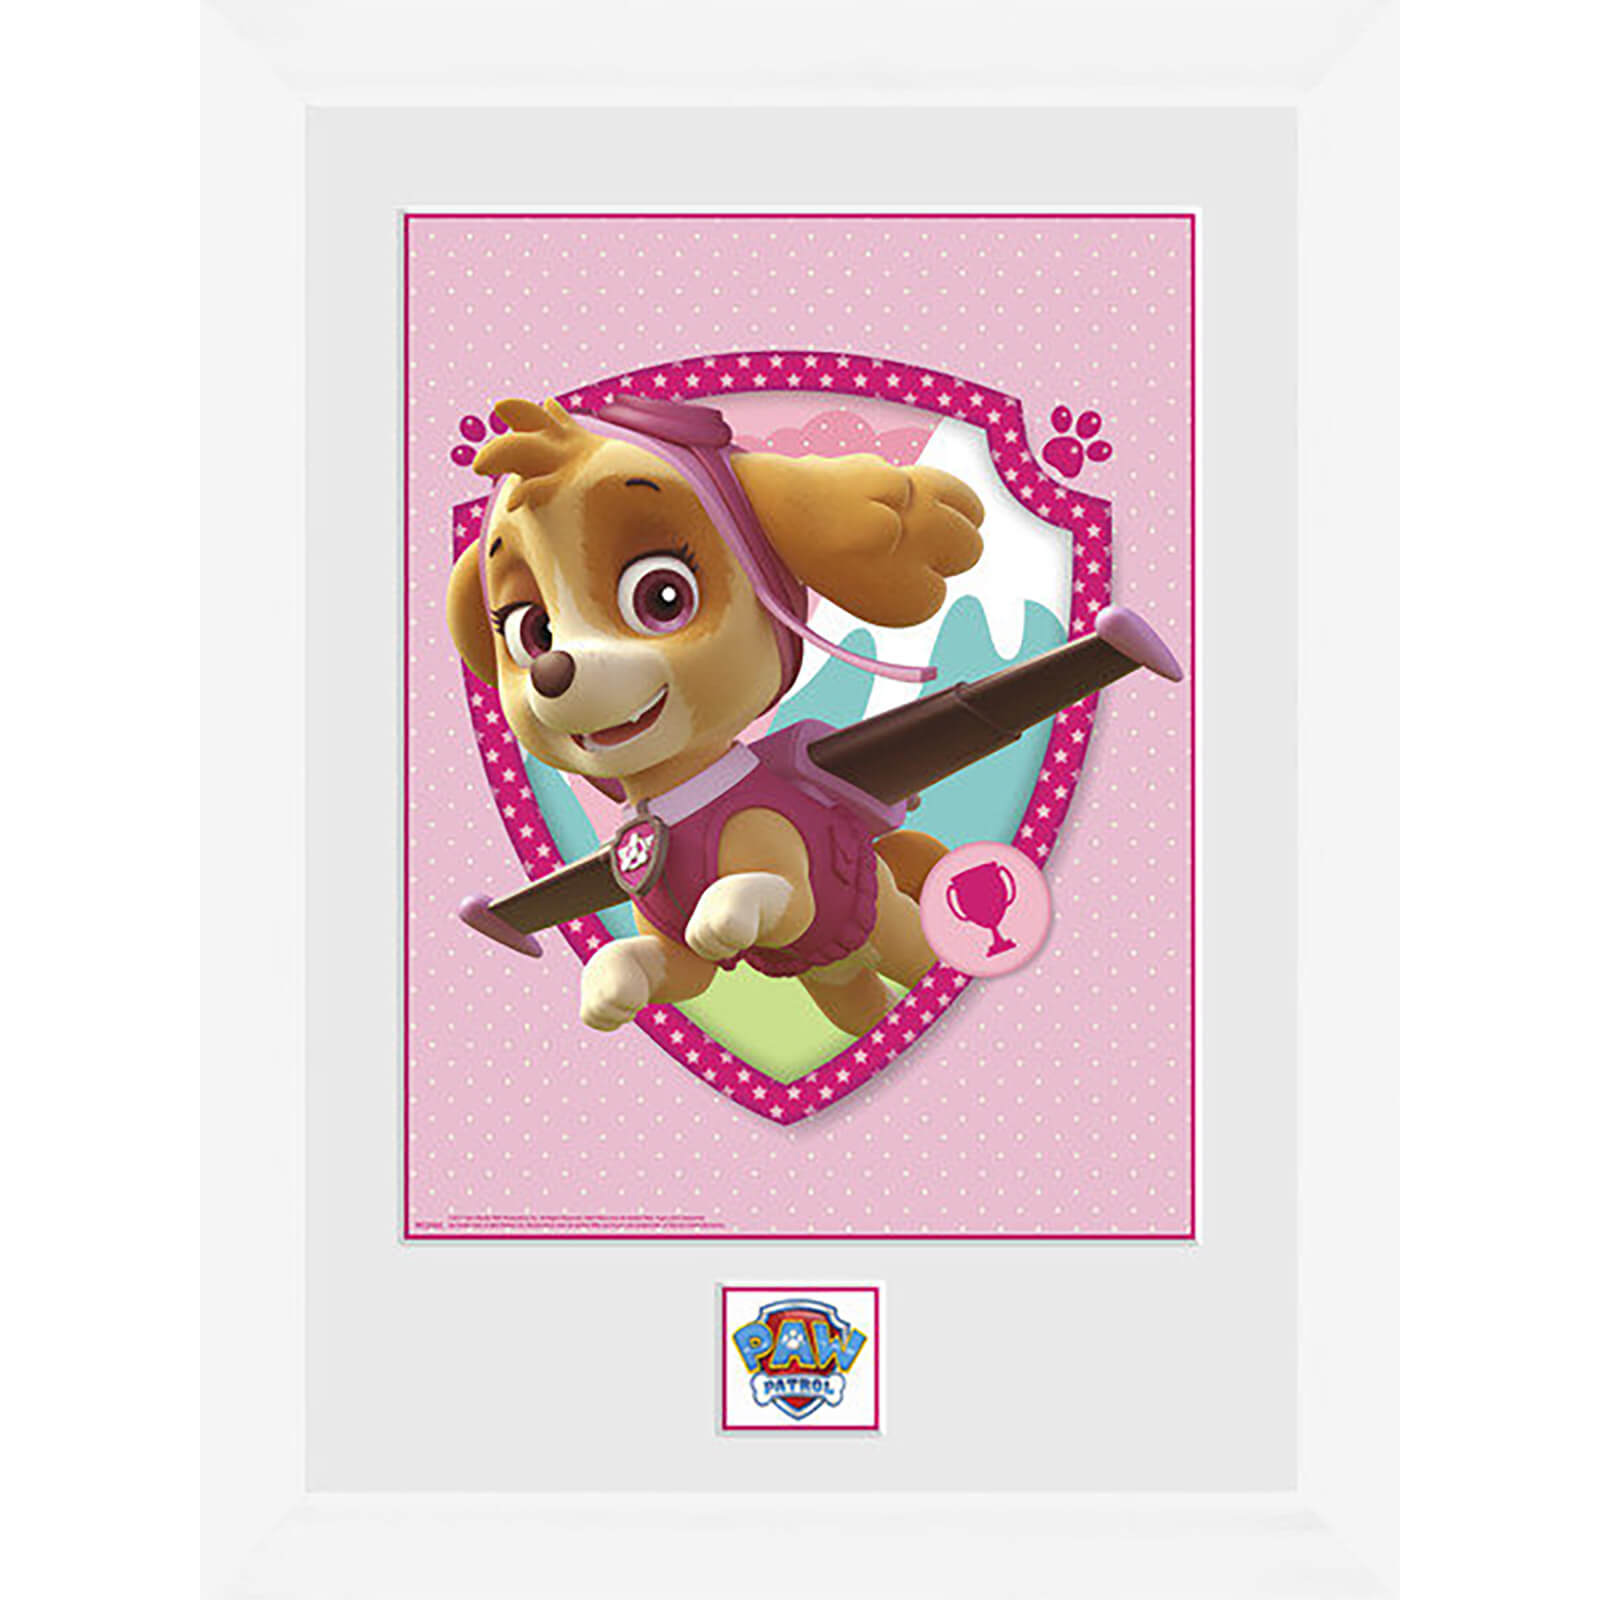 Paw Patrol Syke - 16 x 12 Inches Framed Photograph